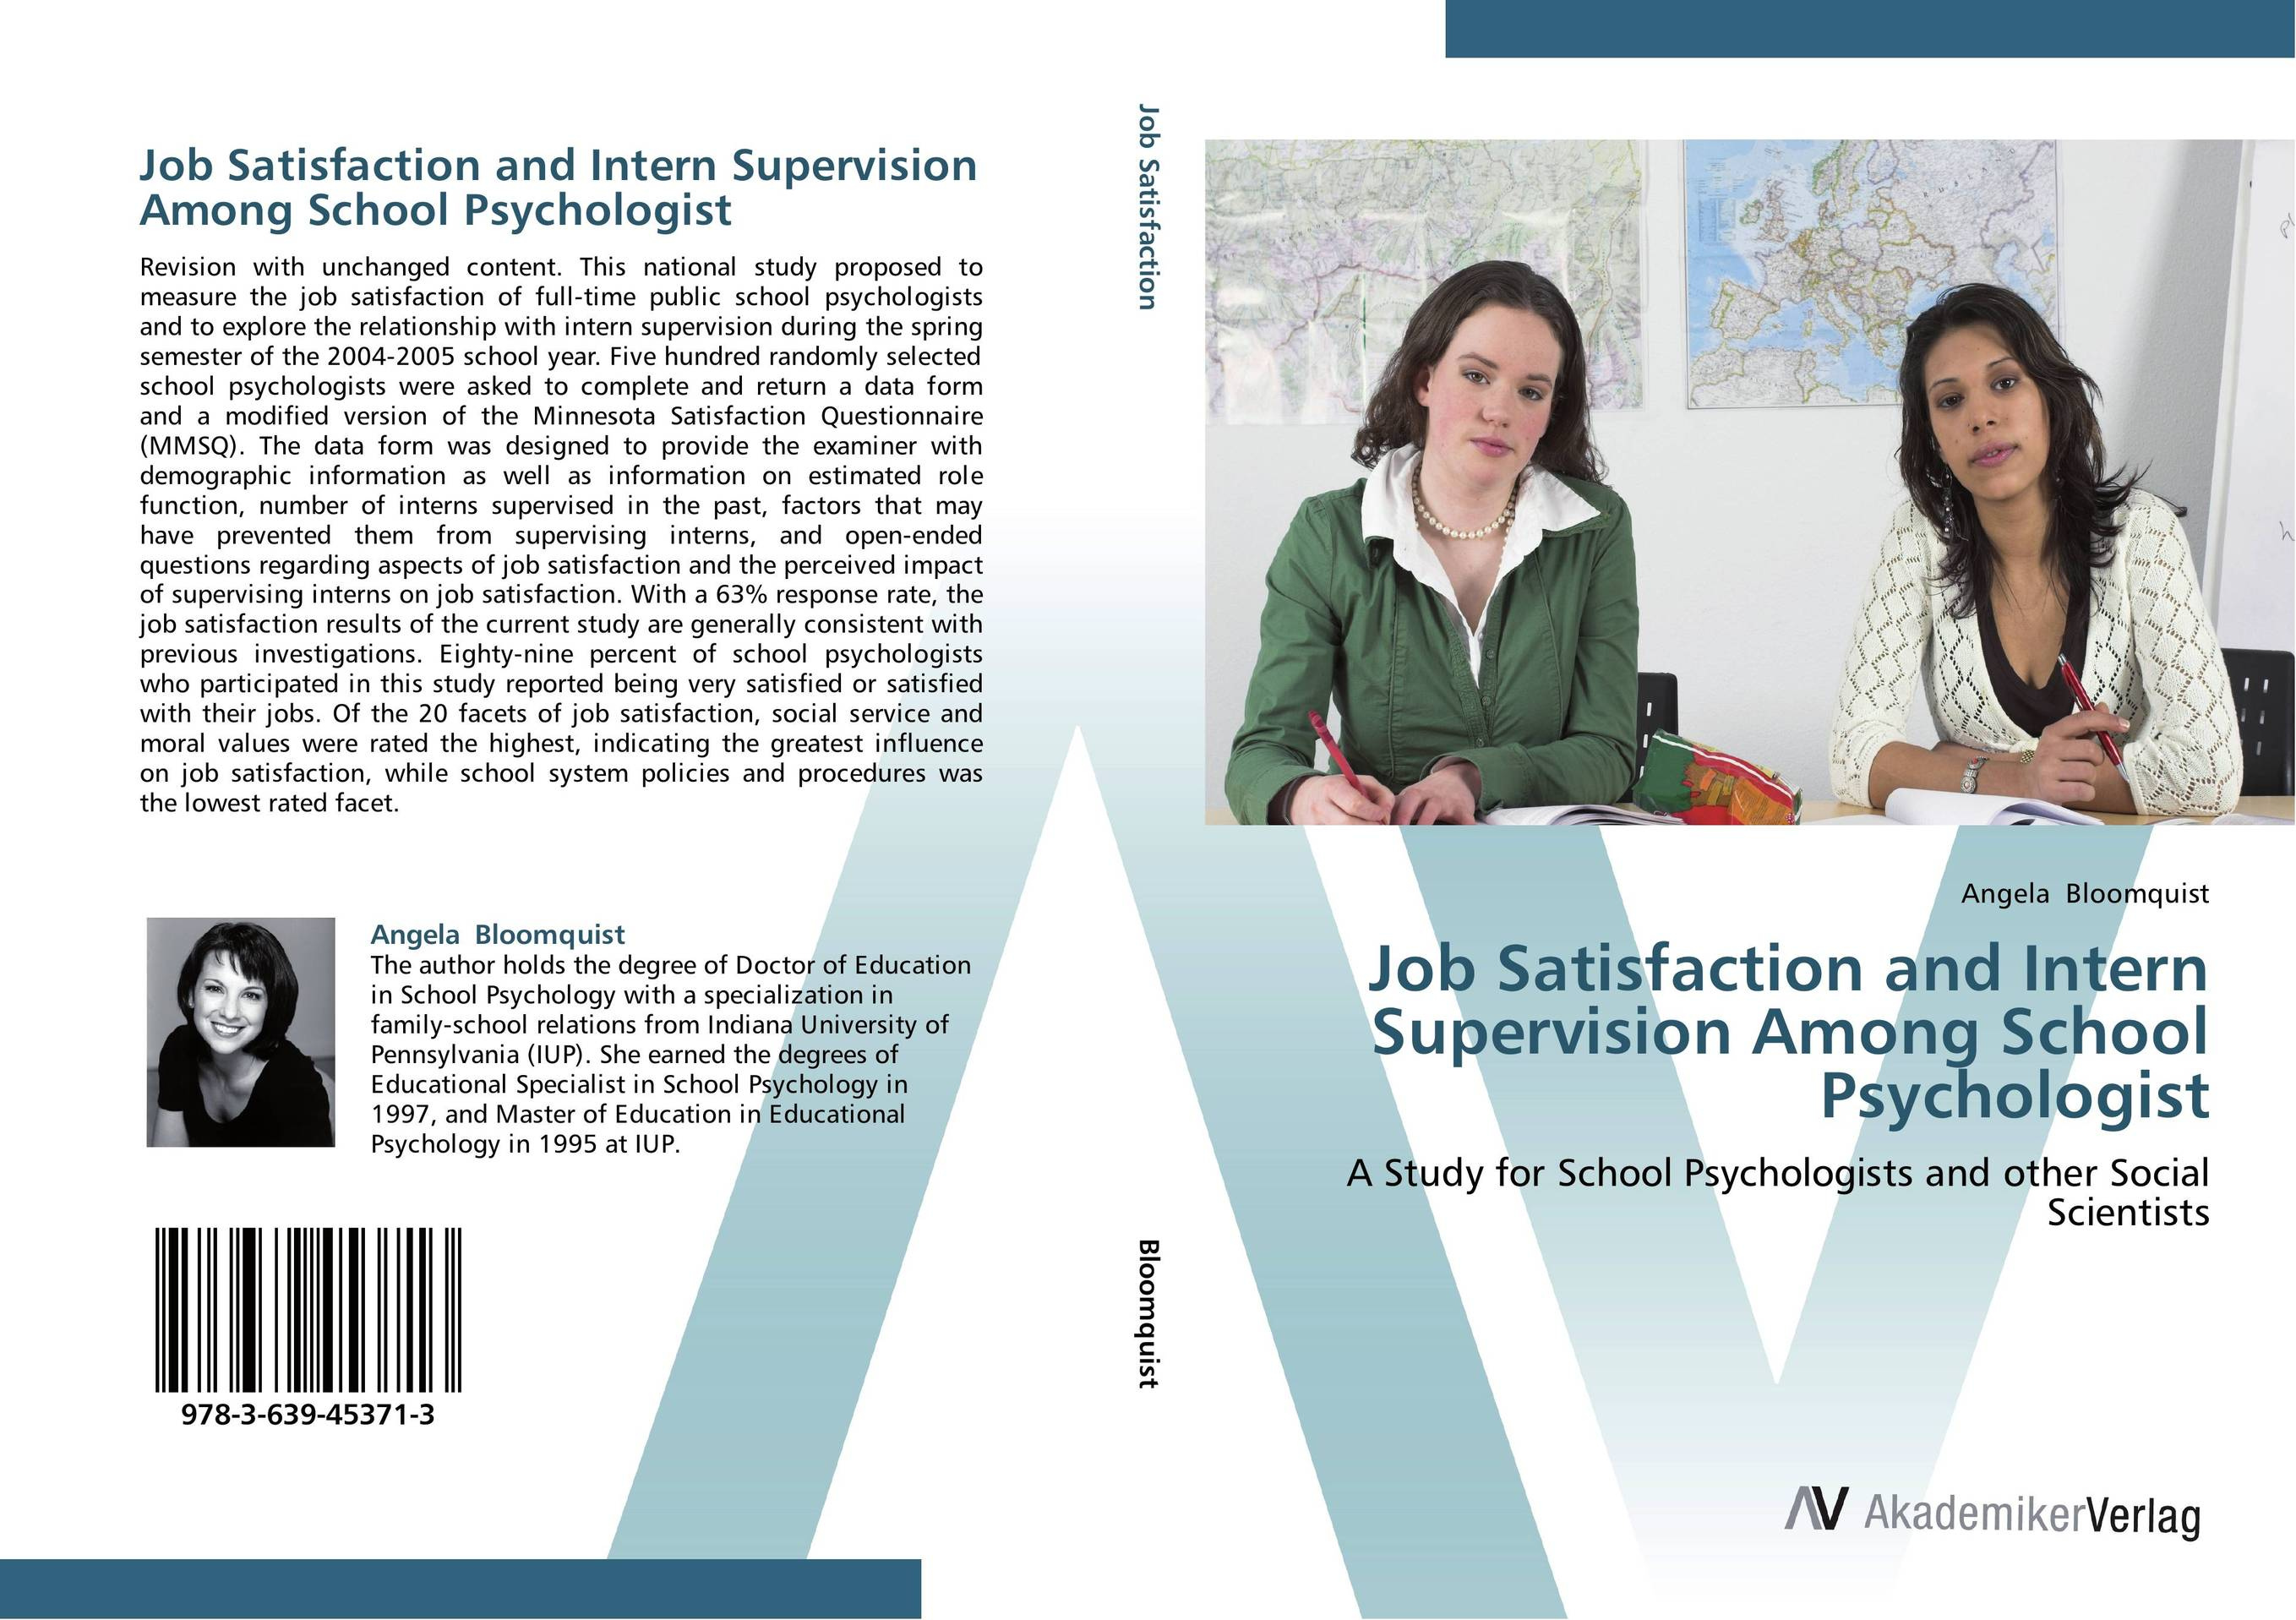 Job Satisfaction and Intern Supervision Among School Psychologist